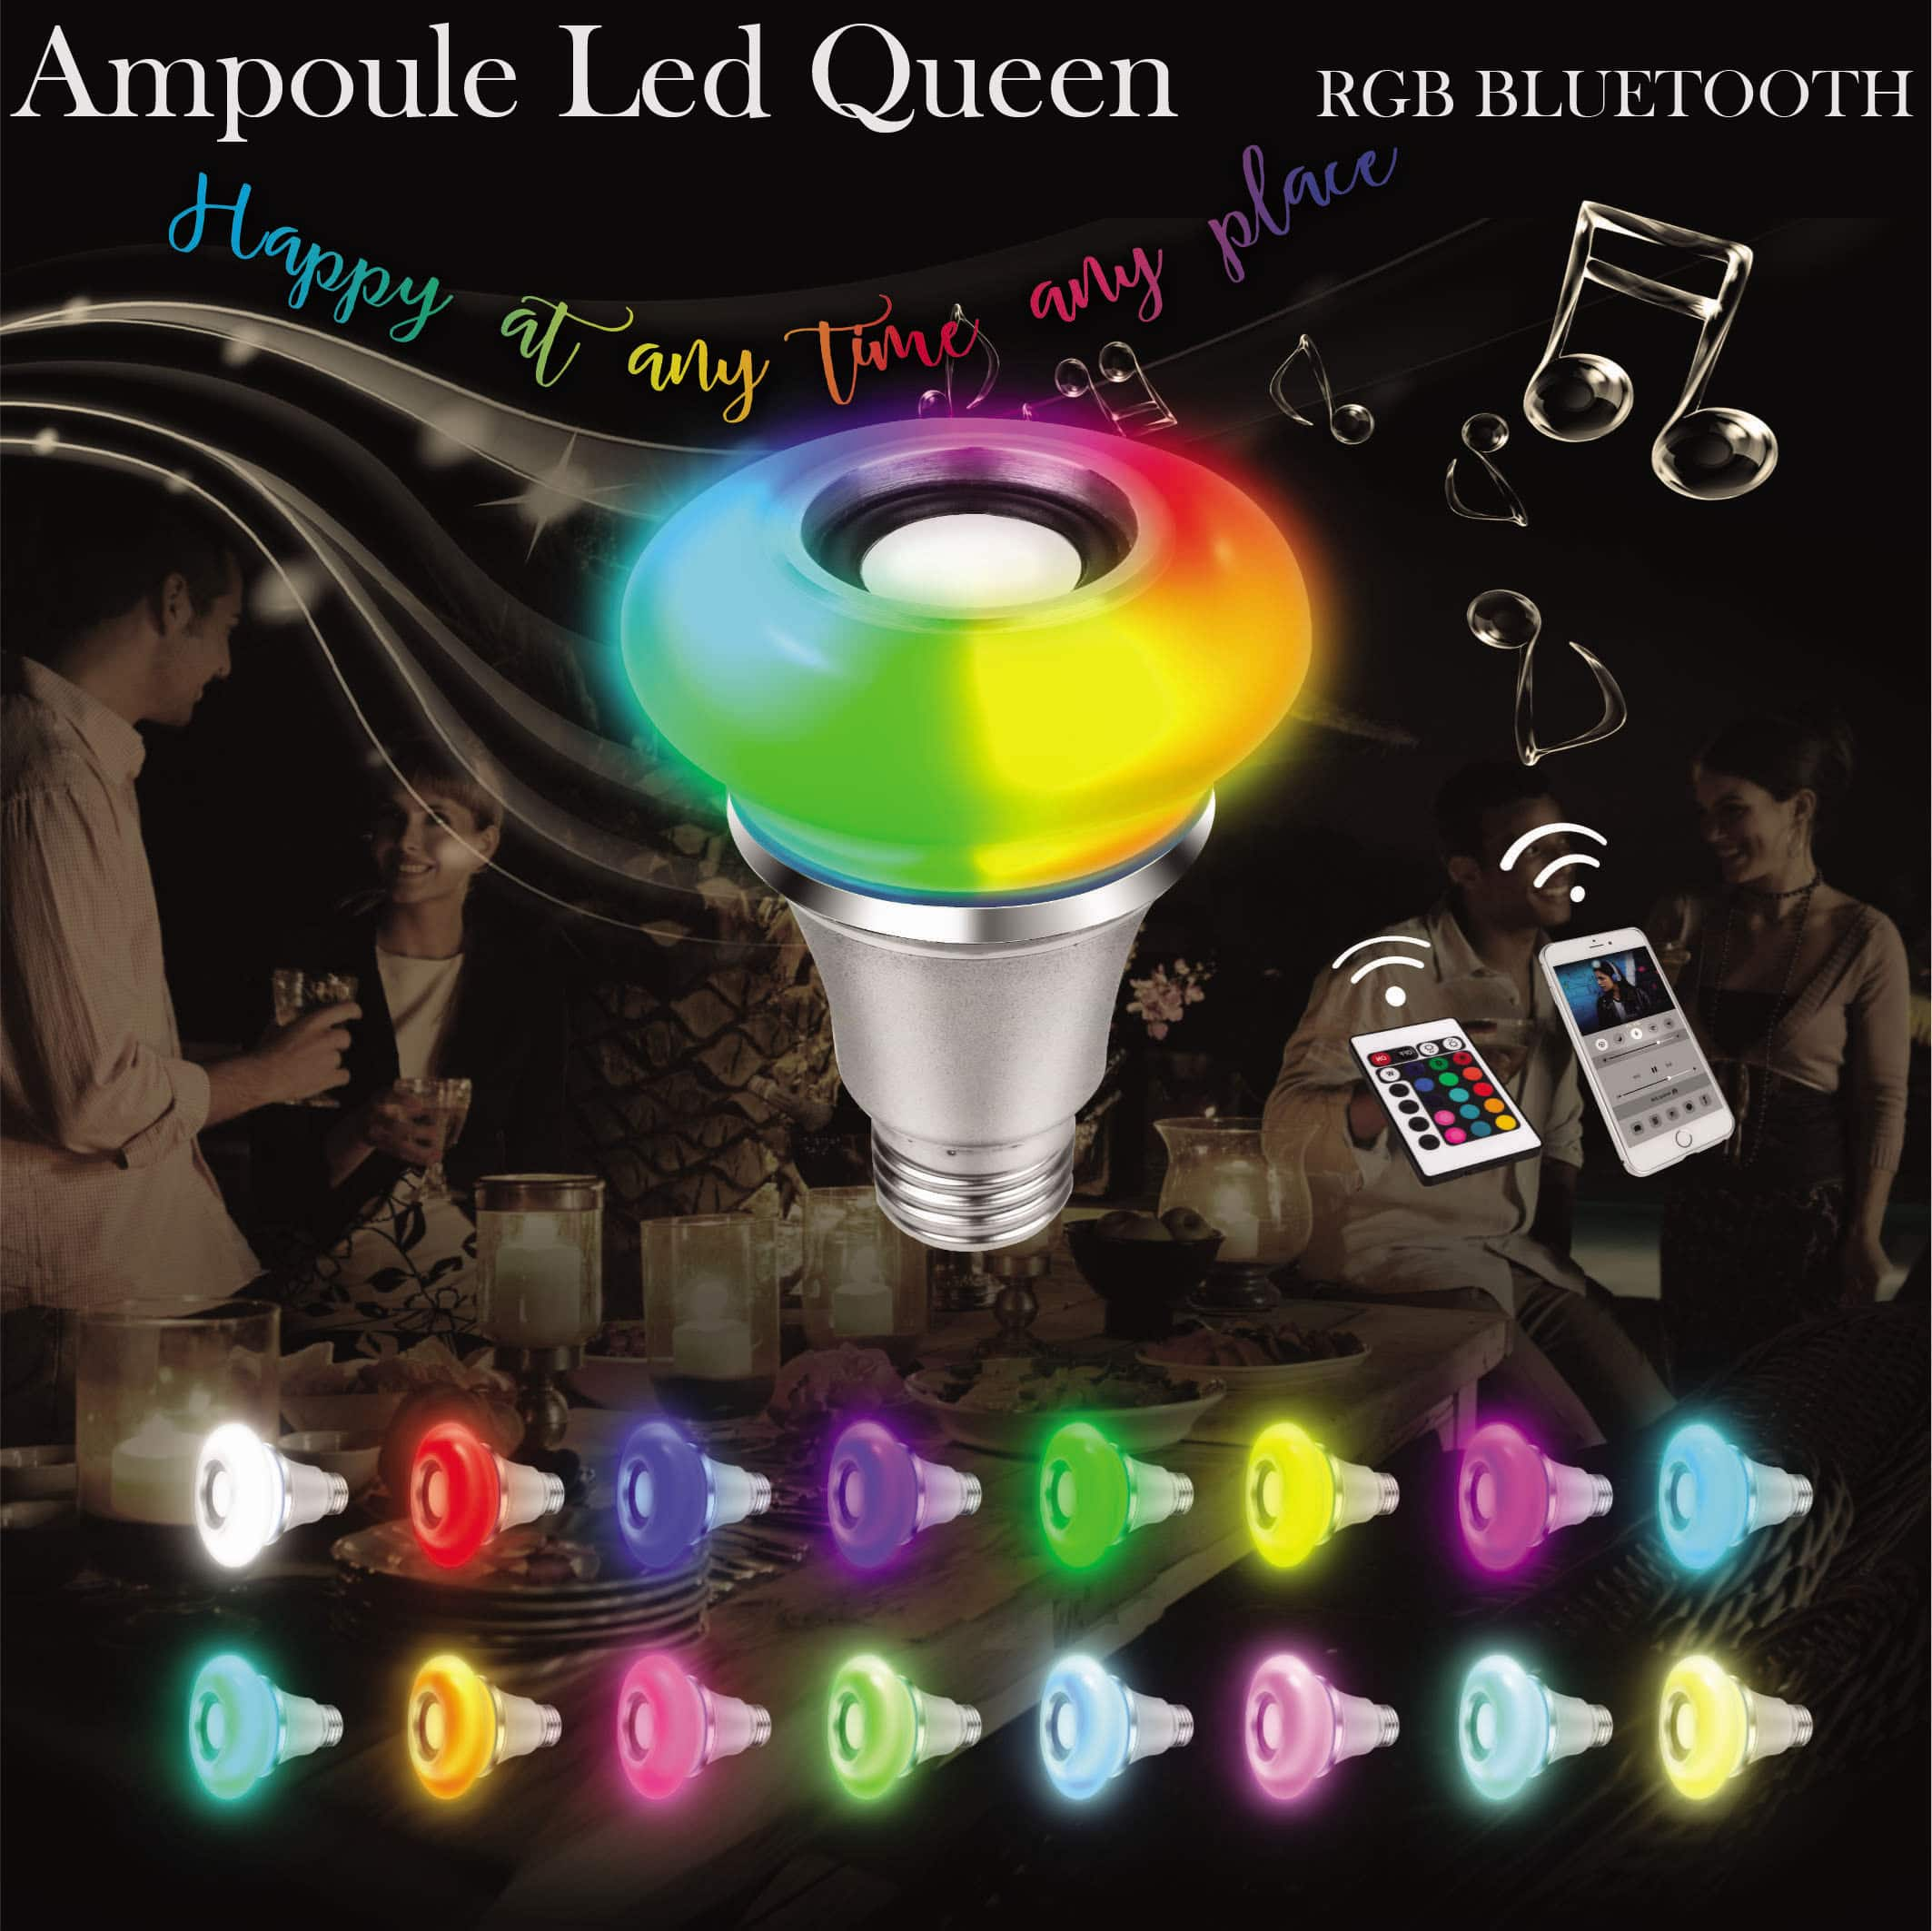 Ampoule Eclairage Ampoule Led E27 Queen Bluetooth Rgb